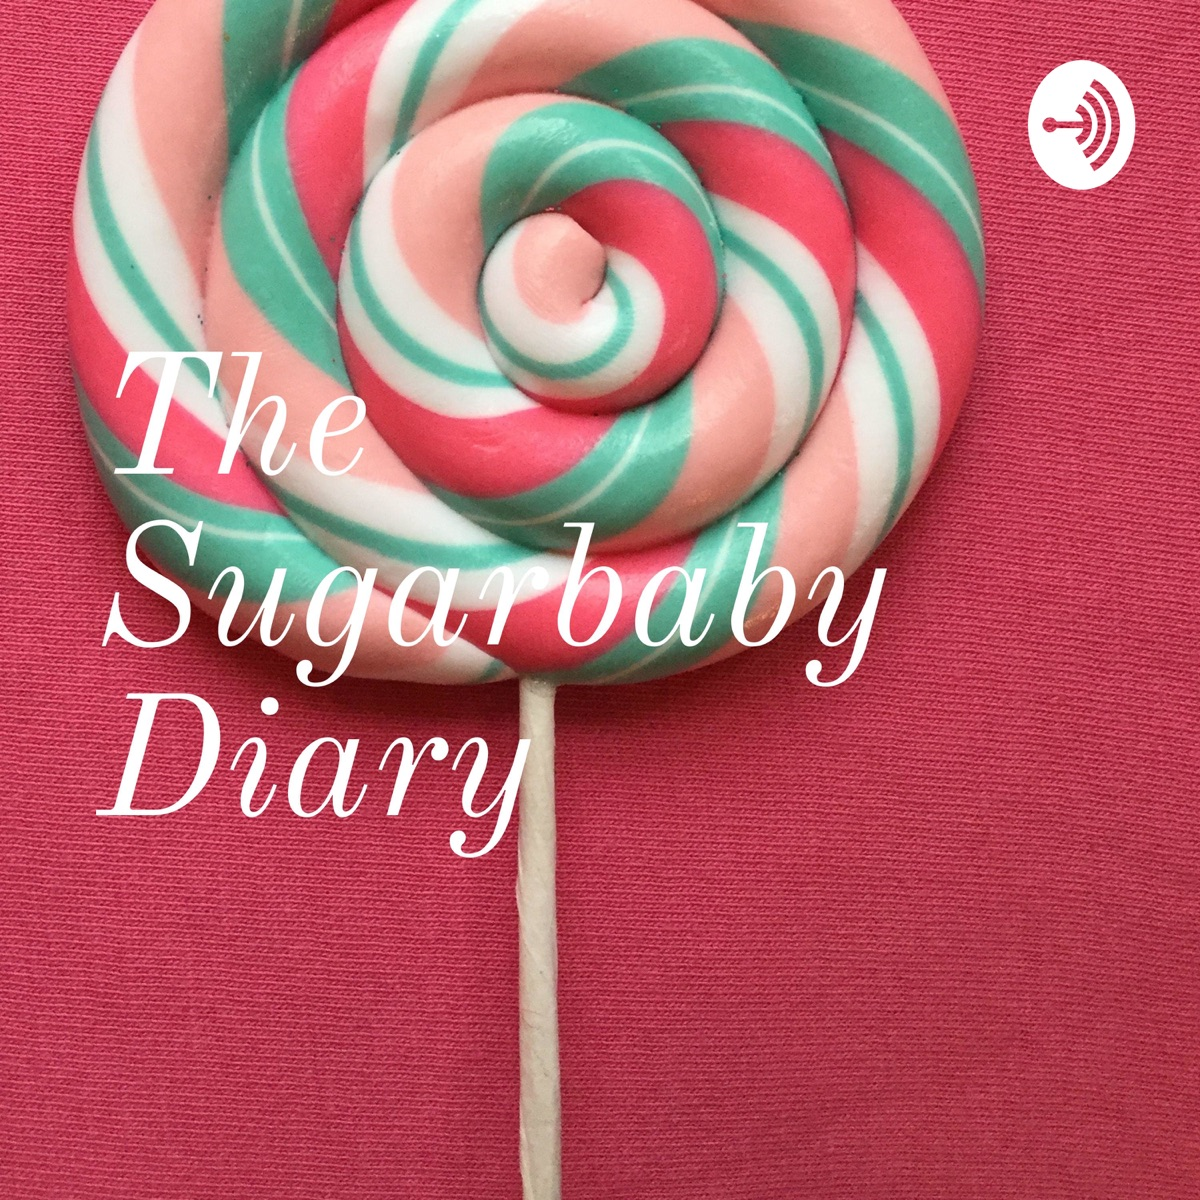 The Sugarbaby Diary